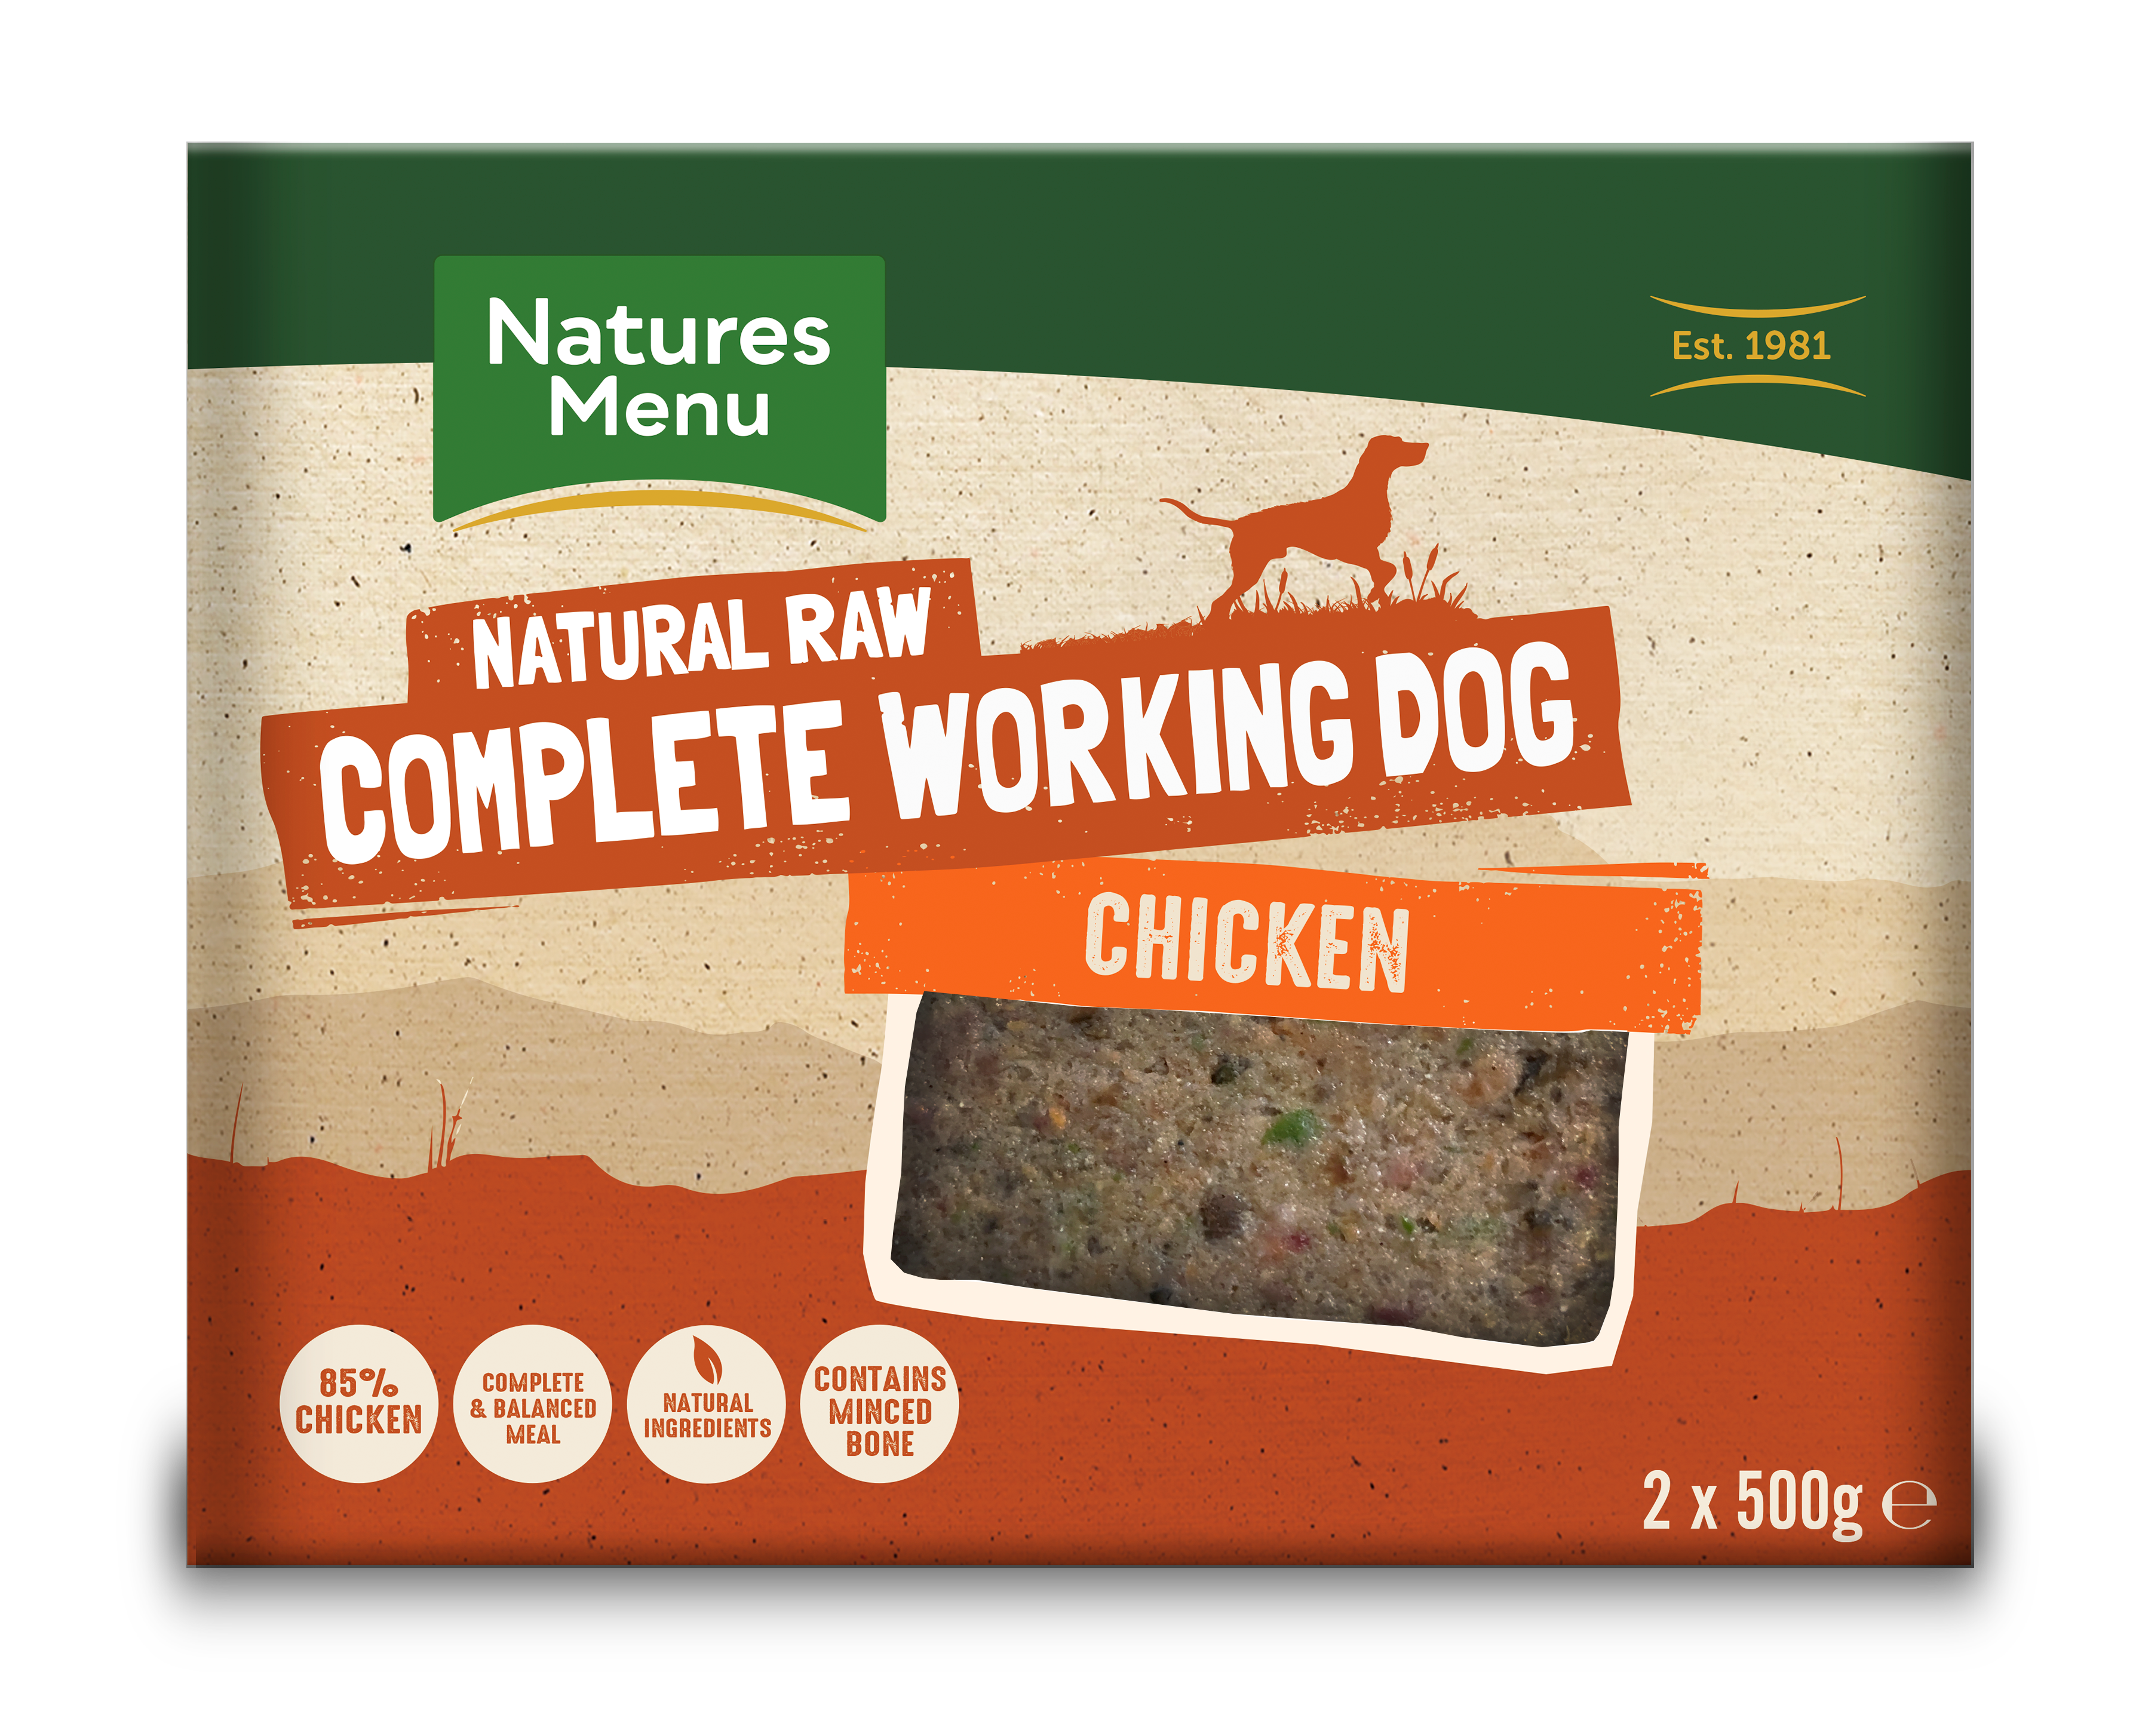 Natures Menu Complete Working Dog Chicken 2 x 500g Front of Pack